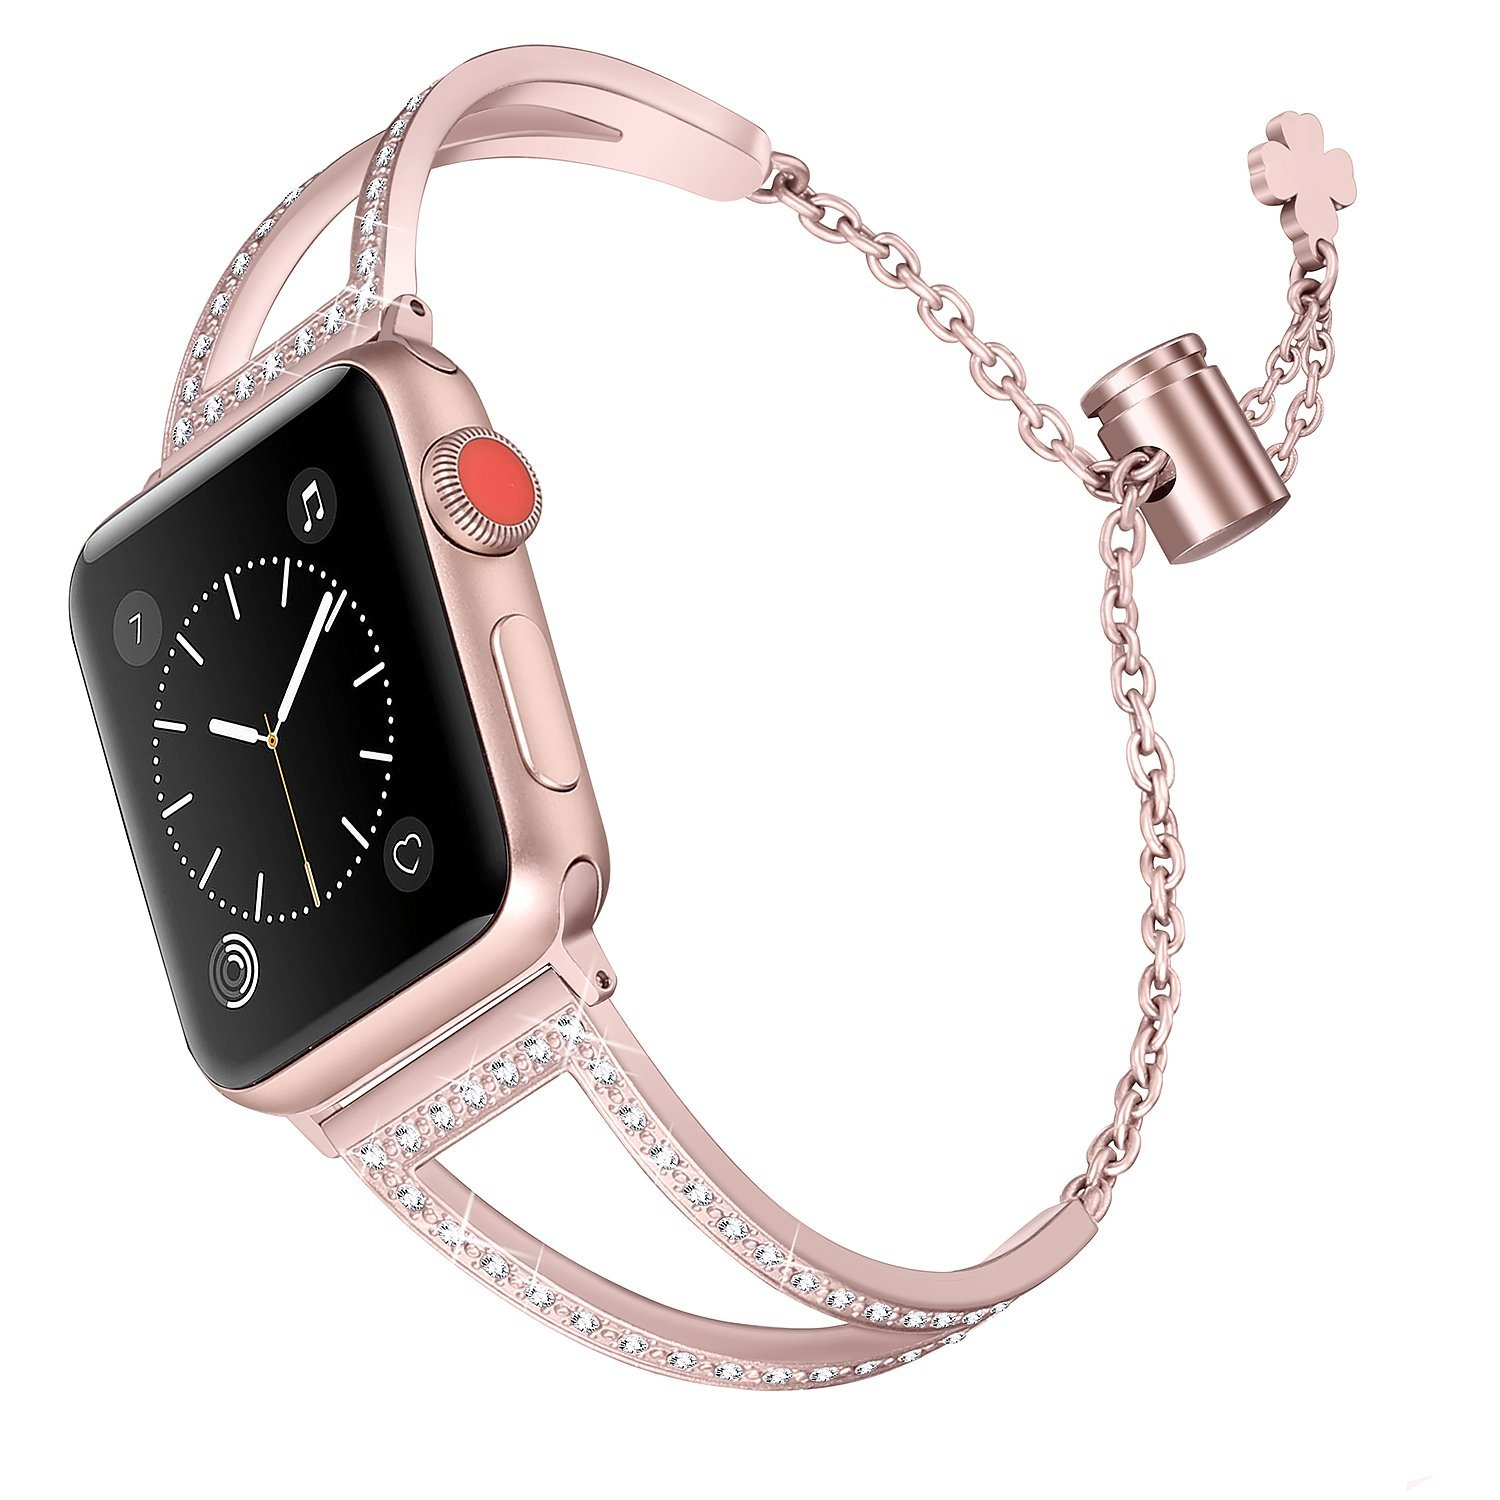 Secbolt Bling Bands Compatible Apple Watch Band 38mm 40mm Iwatch Series 4/3/2/1, Women Stainless Steel Metal Jewelry Bracelet Bangle Wristband, Rose Gold by Secbolt